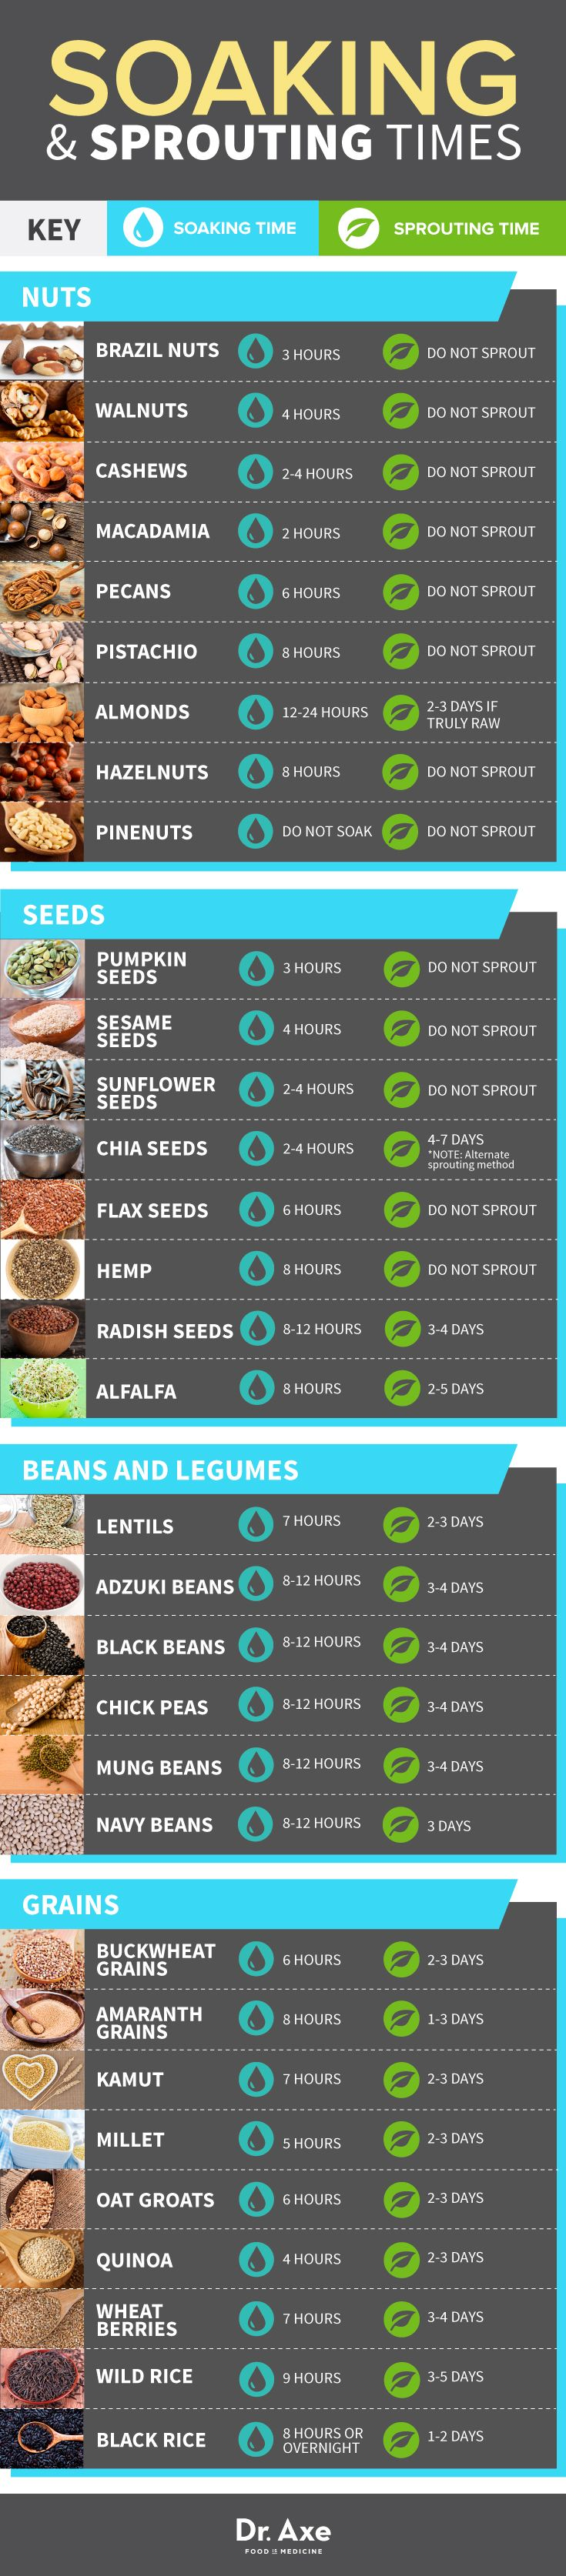 Most comprehensive site on sprouting that I have found.  Sprout Guide: How to sprout grains, nuts and beans - Dr. Axe etsy.com/shop/thesproutstand